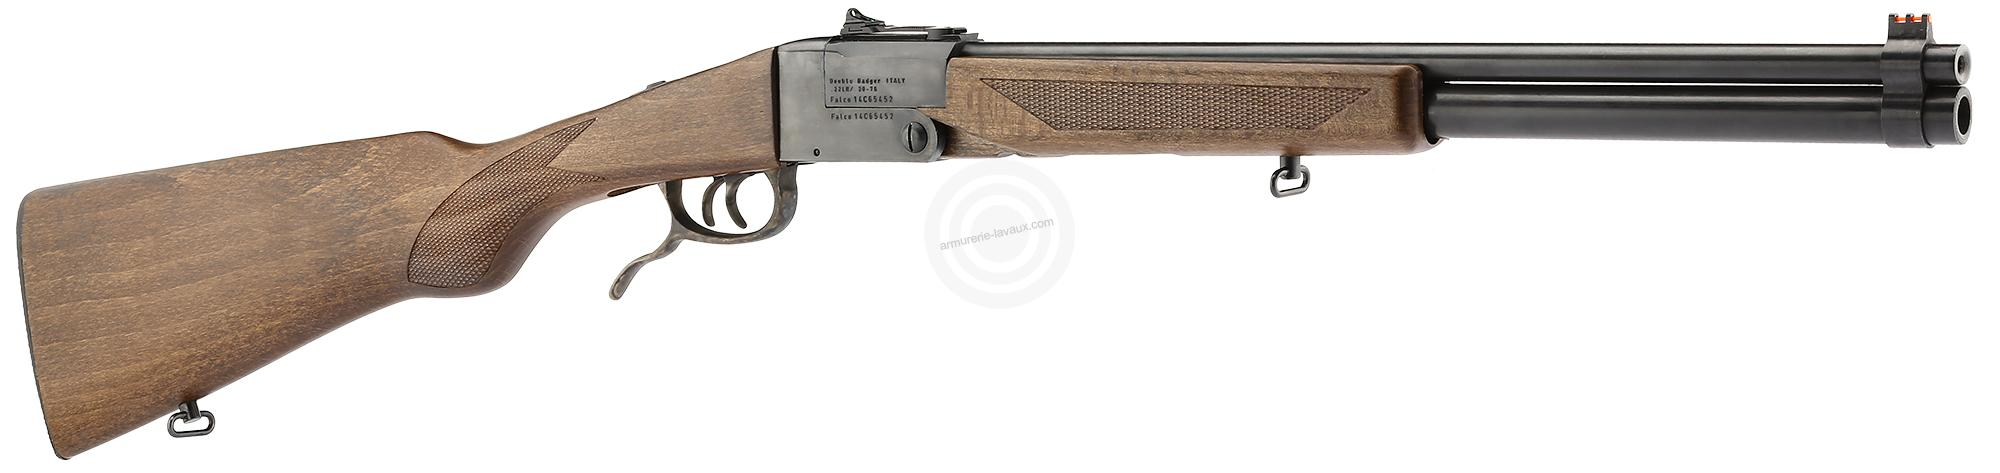 Carabine CHIAPPA Double Badger cal.22lr / 20